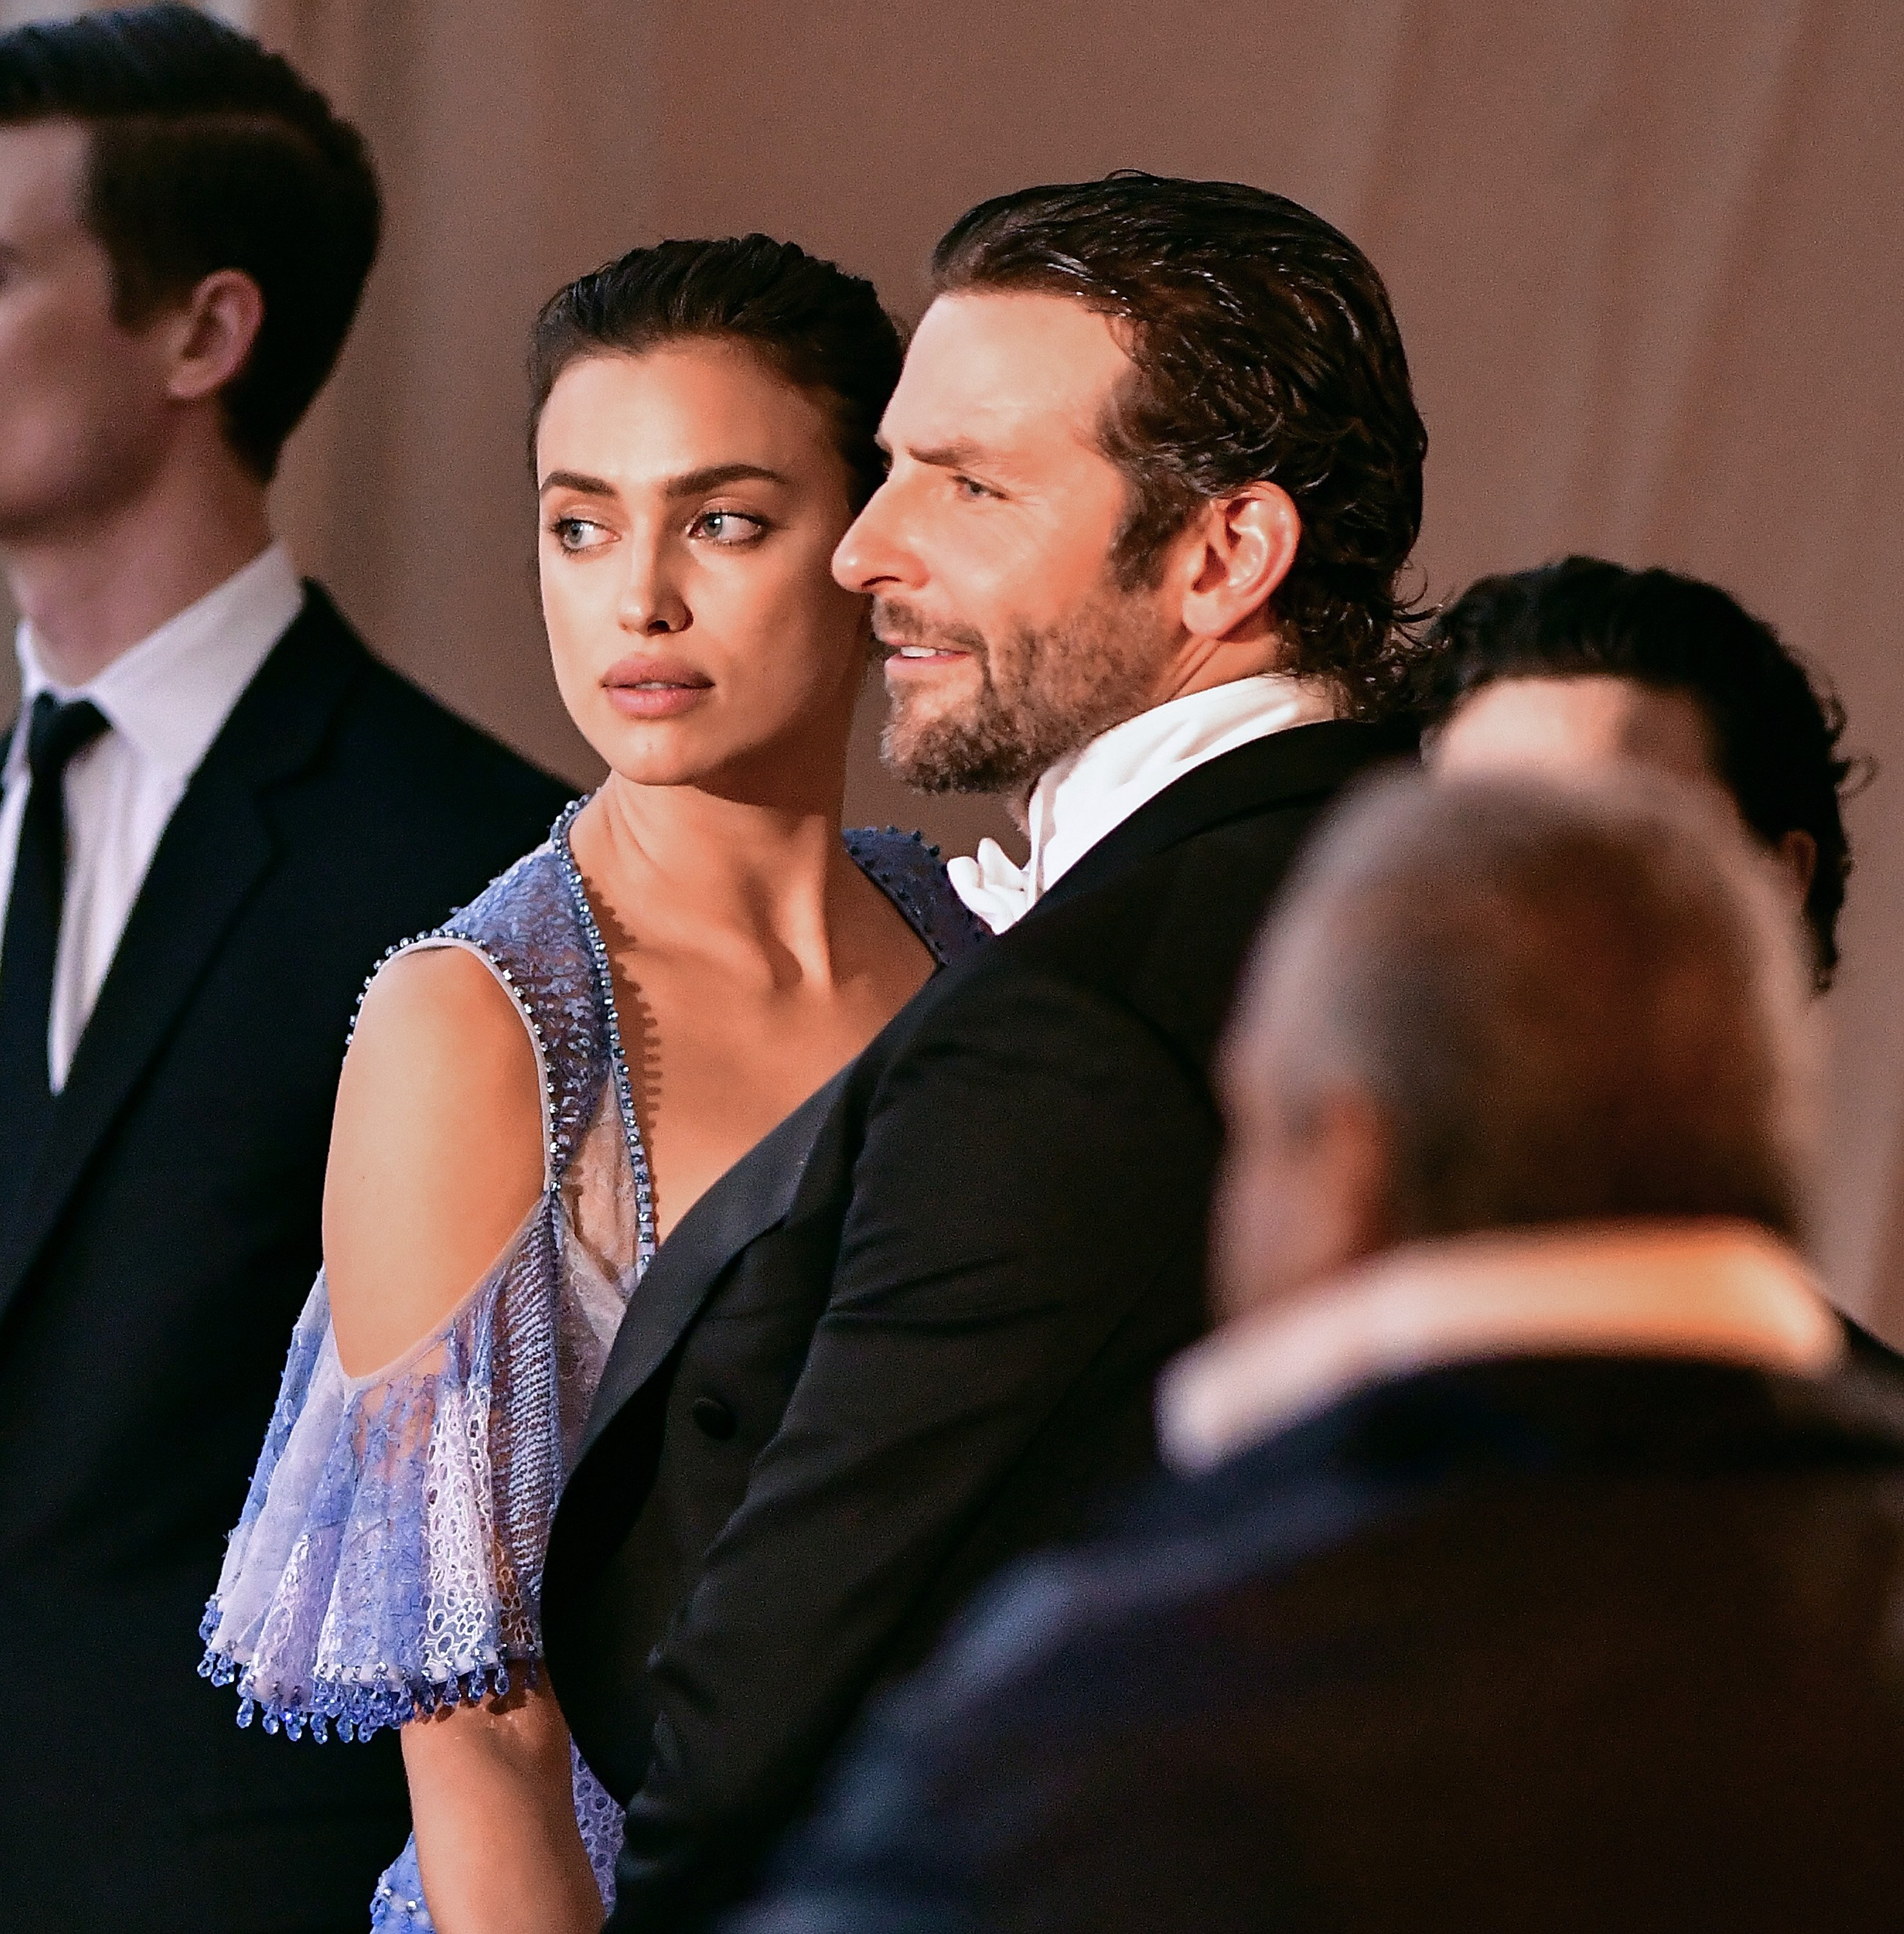 Irina Shayk and Bradley Cooper attend 'Manus x Machina: Fashion in an Age of Technology' Costume Institute Gala at Metropolitan Museum of Art on May 2, 2016 in New York City   Photo : Images